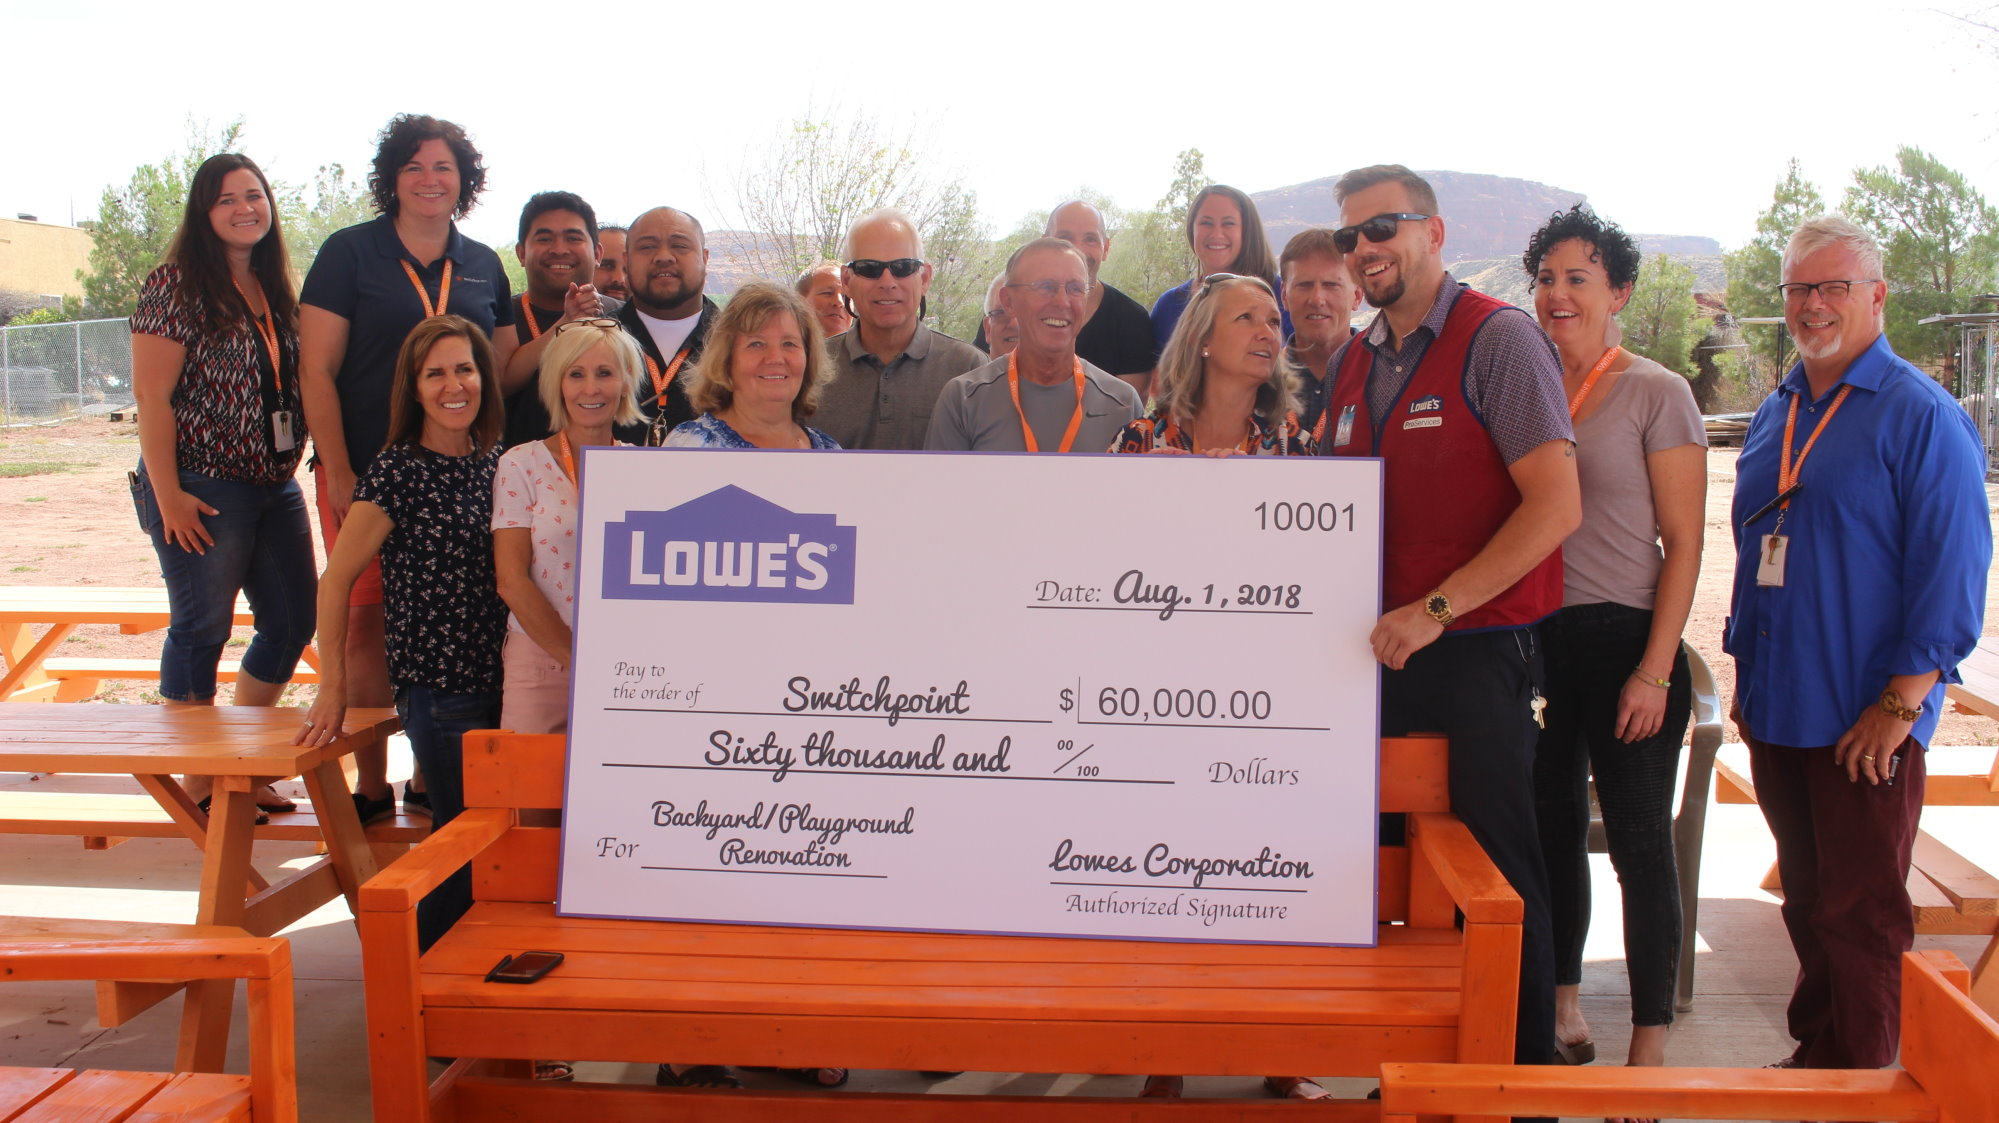 Lowes Donates 60k To Switchpoint For Playground St George News 4 Way Switch Staff Of The Community Resource Center And Ben Kohler Store Manager Home Improvement In Stand Next An Oversized Check